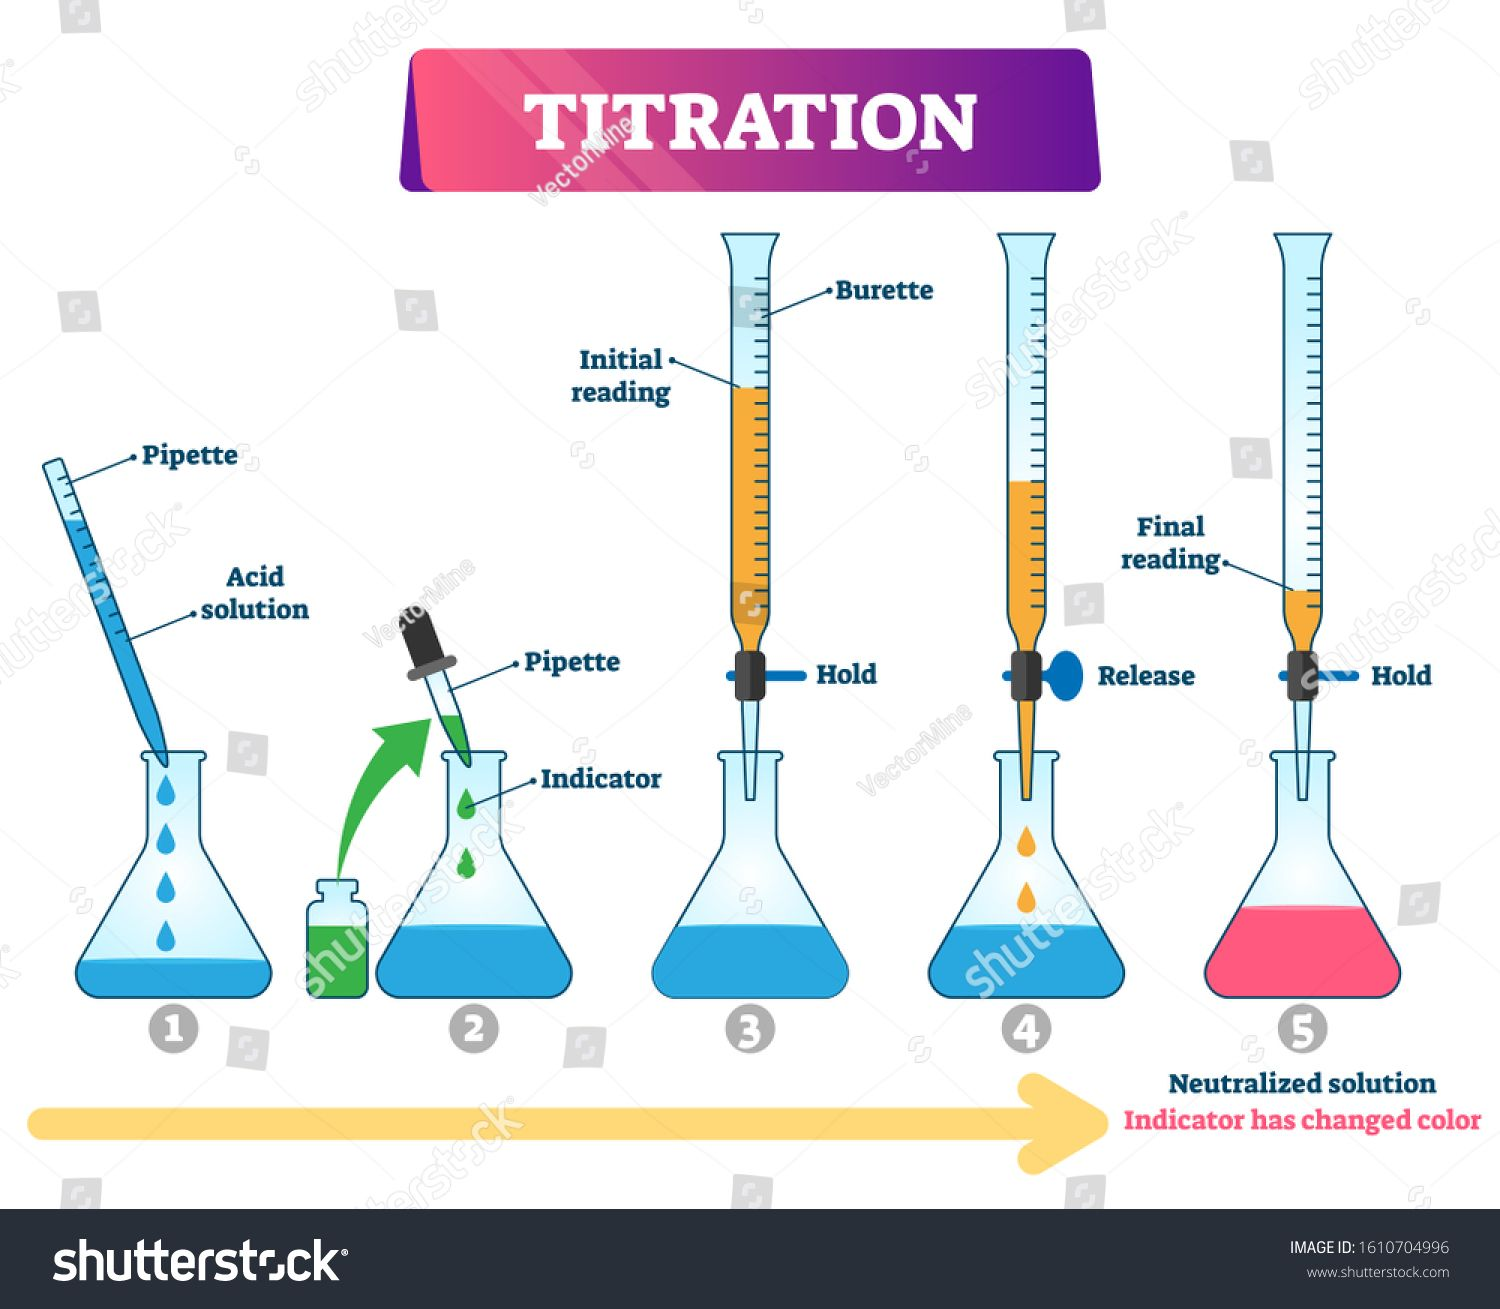 Titration Vector Illustration Labeled Educational Chemistry Process Scheme Diagram With Quantitative Chemical Analysi In 2020 Chemistry Education Vector Illustration